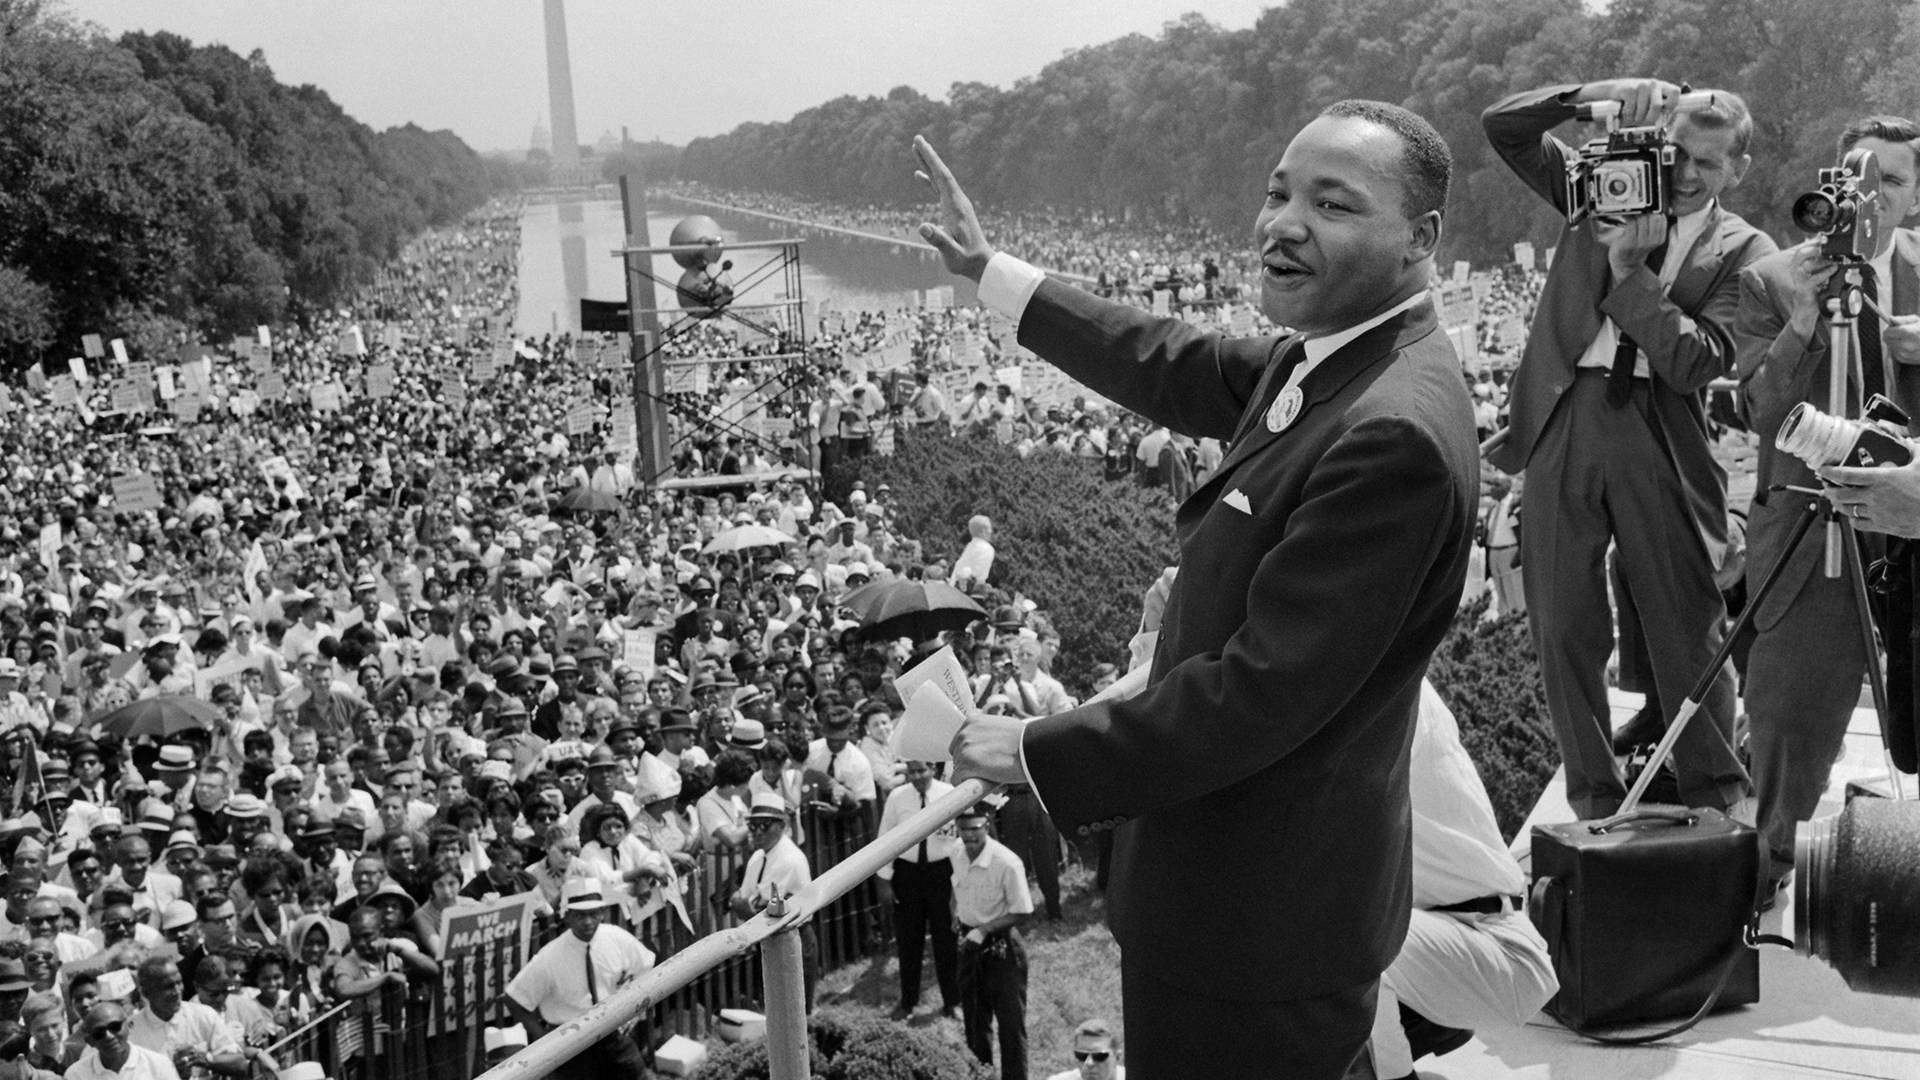 The civil rights leader Martin Luther King waves to supporters on Aug. 28, 1963 at the March on Washington.  AFP/Getty Images